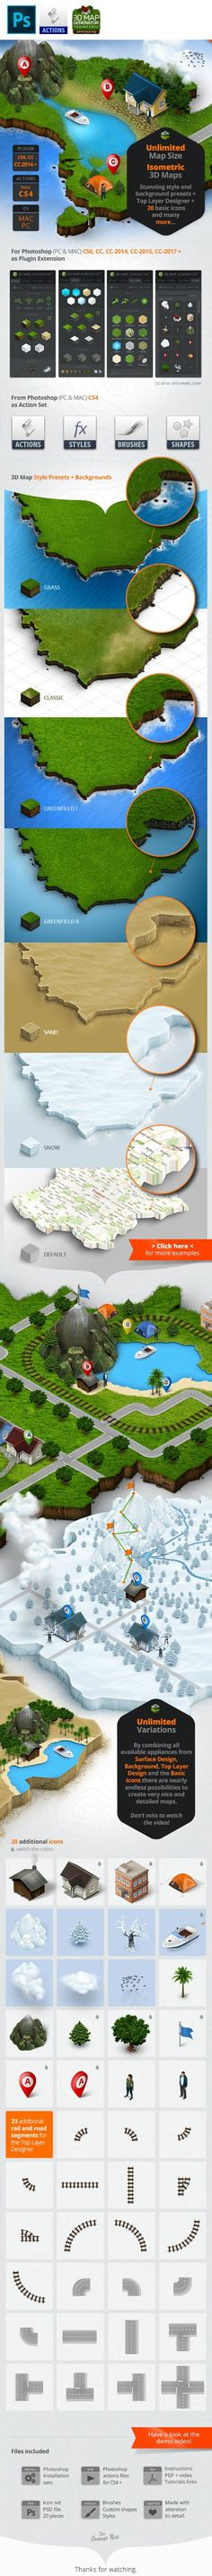 """3d, continent, country, creator, directions, earth, generator, geo, geographic, icons, infographic, isometric, land, landmark, layer, locations, maker, map, marker, photoshop, pin, plan, plugin, road, Routes, sketch, states, terrain, travel, web Update History November 5, 2016 - Panel CC-2017 Update Version 1.5 (for CC-2014 + only) November 17, 2015 - Comprehensive bug fix - small UI update and progress animation - Added """"Delete Layer"""" function October 8, 2015 - New panel installer f..."""